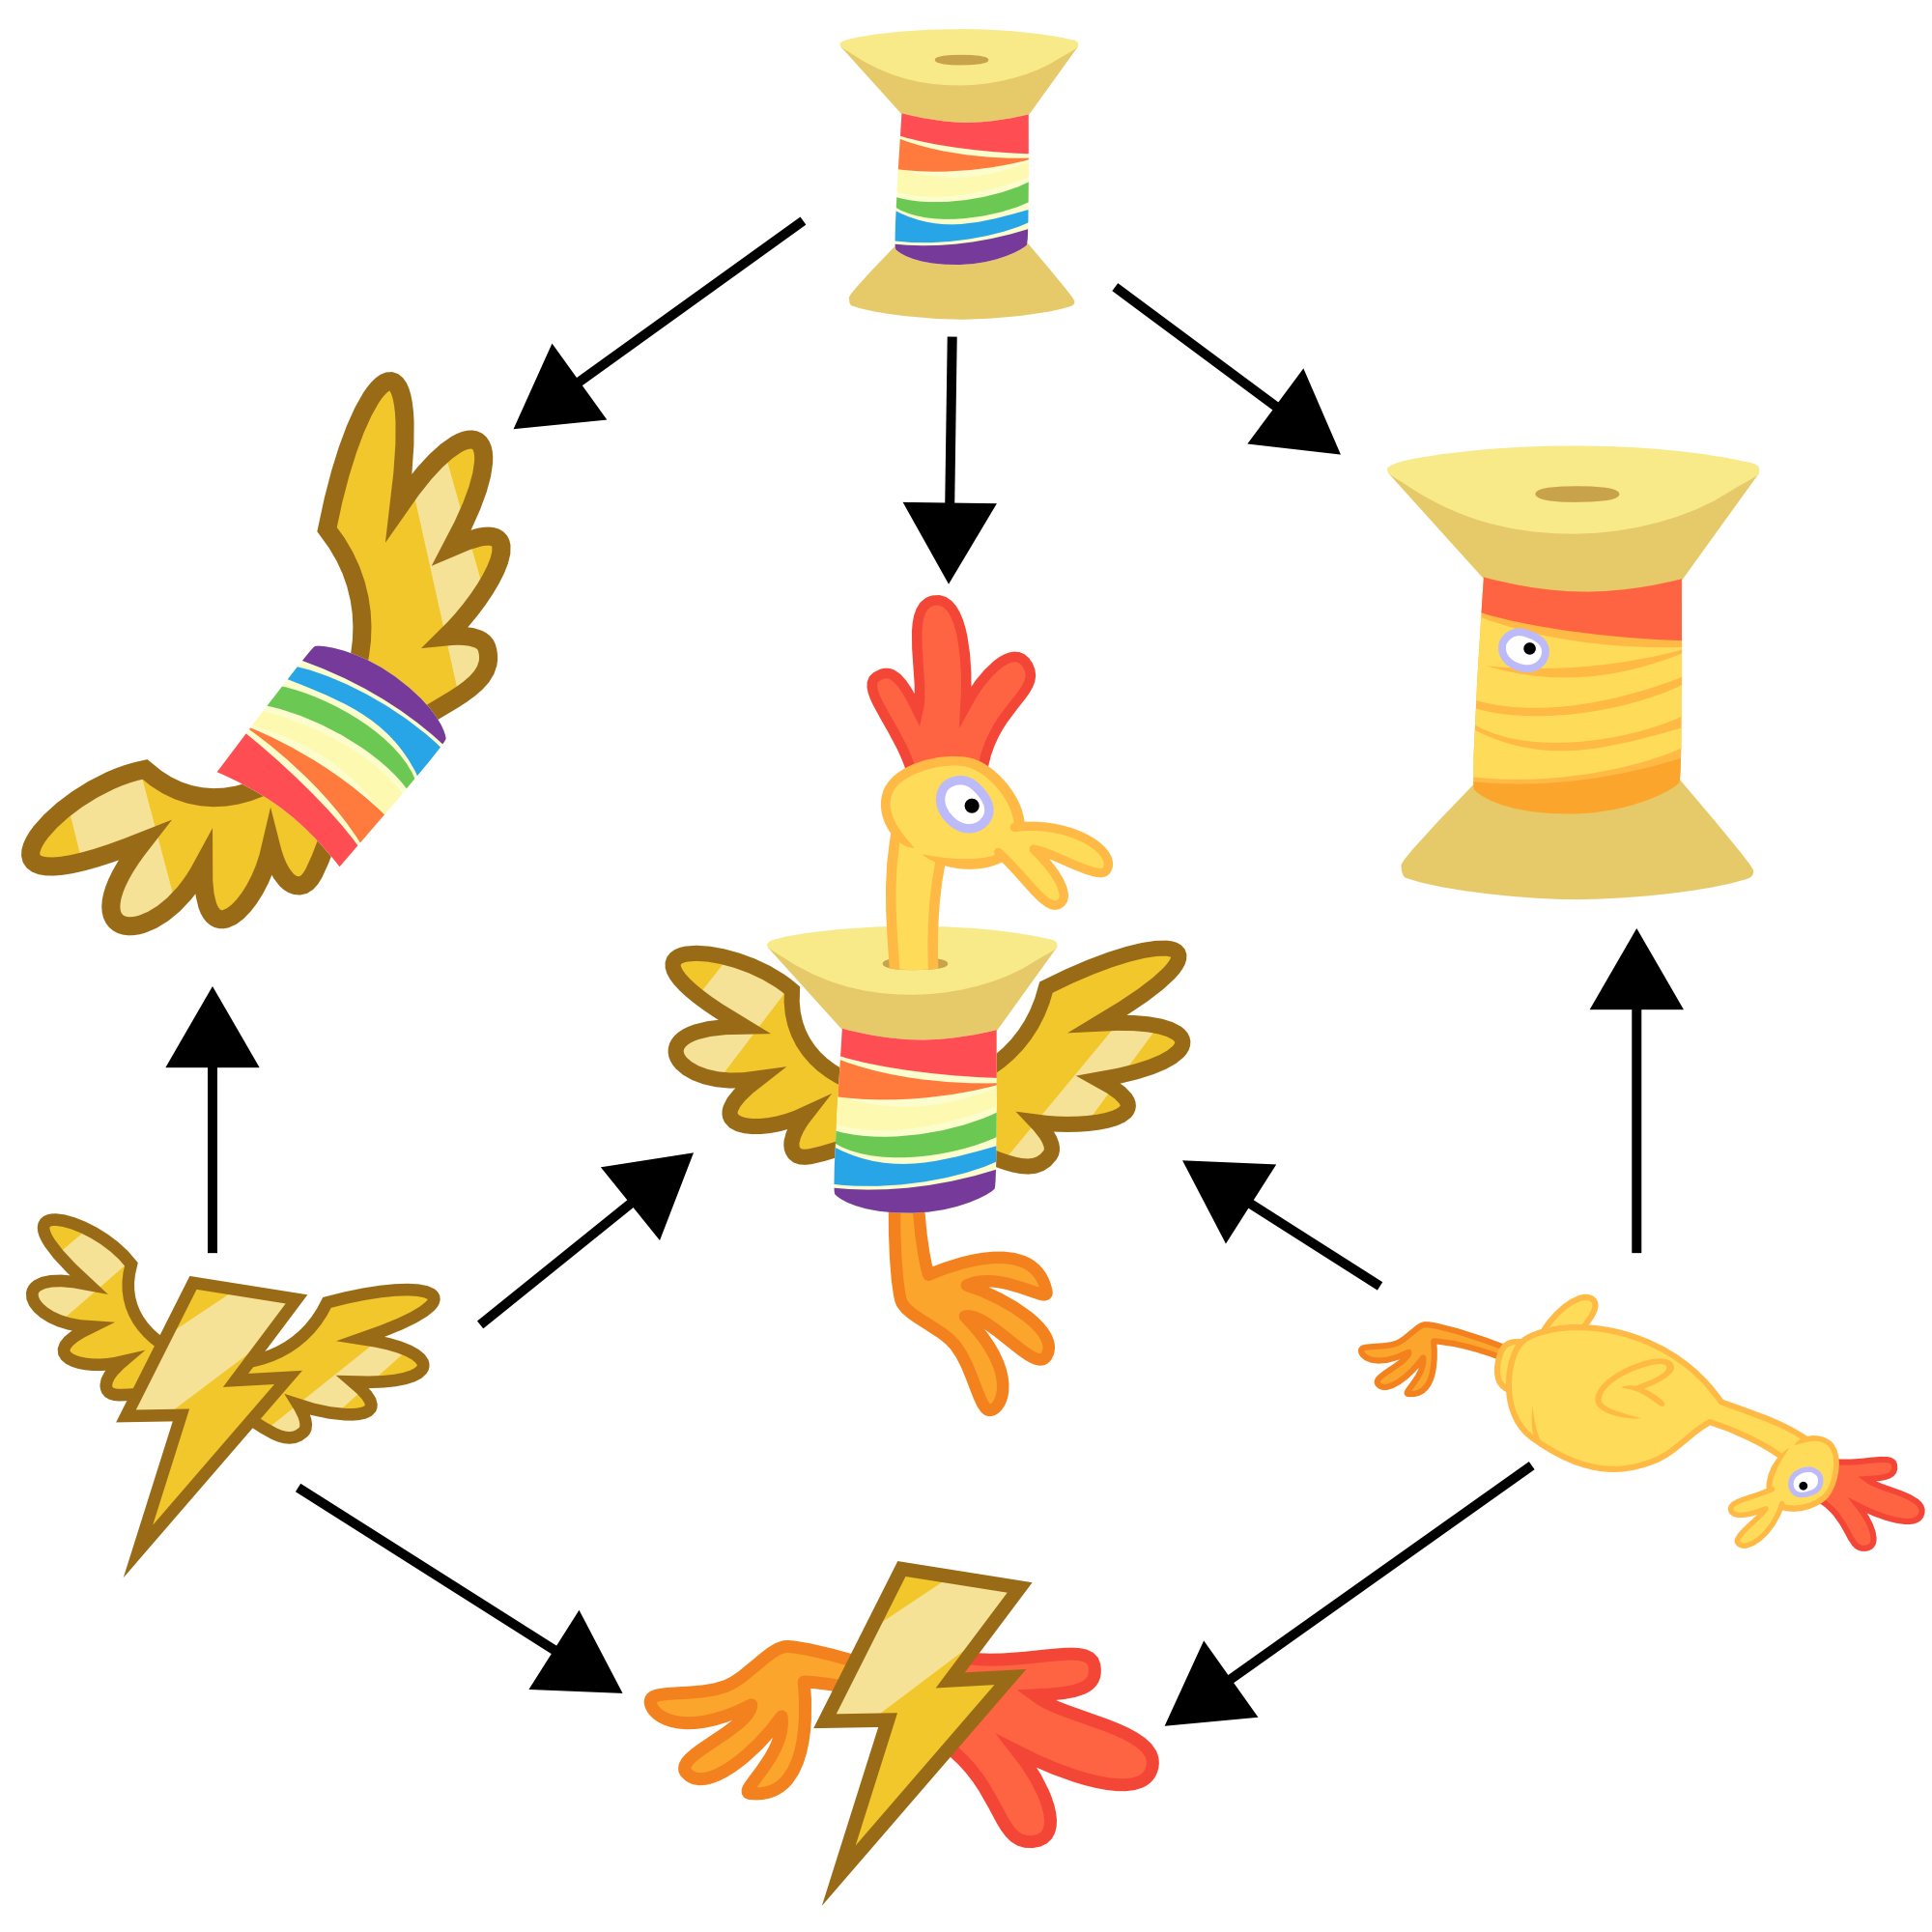 Image 690025 my little pony friendship is magic know your meme rainbow dash derpy hooves pony yellow clip art line ccuart Image collections